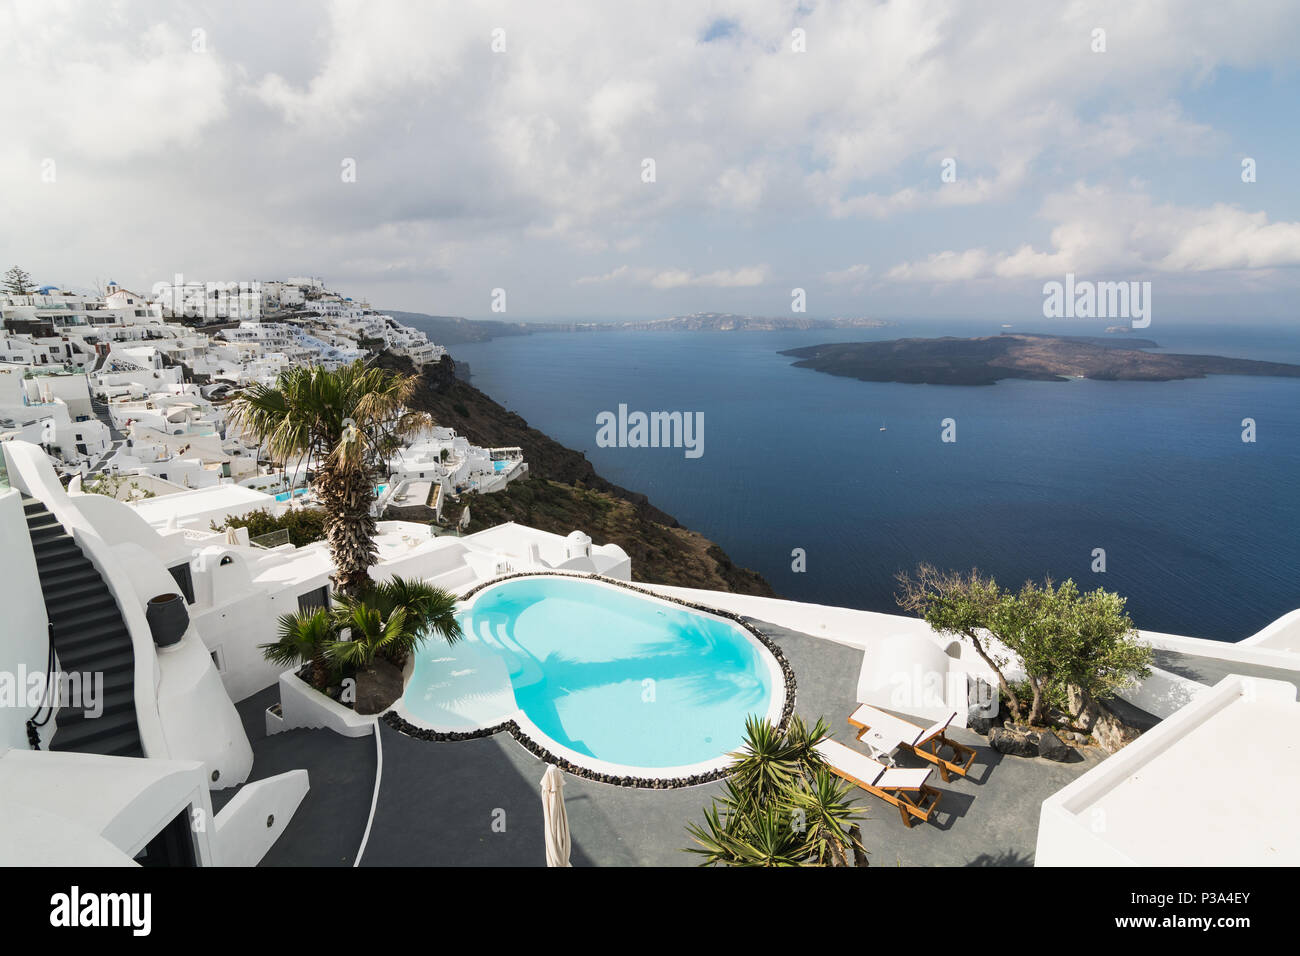 SANTORINI, GREECE - MAY 2018: View over Aegean sea, Firostefani village and volcano caldera with luxury hotel and infinity swimming pool Stock Photo